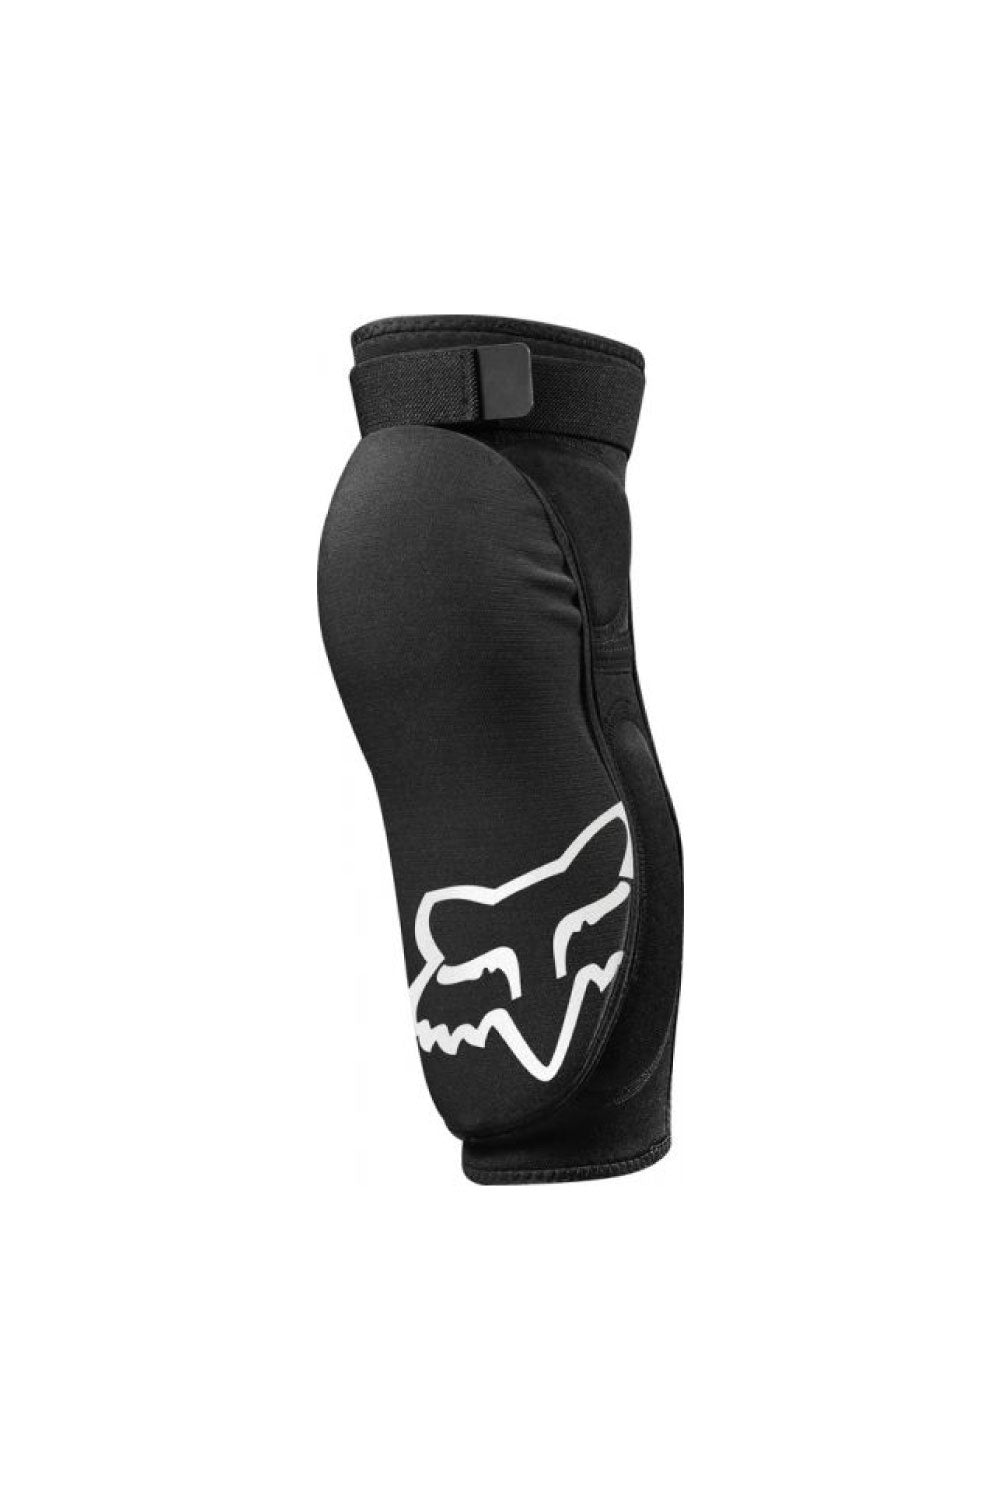 FOX Racing Launch D30 MTB Bike Elbow Pads